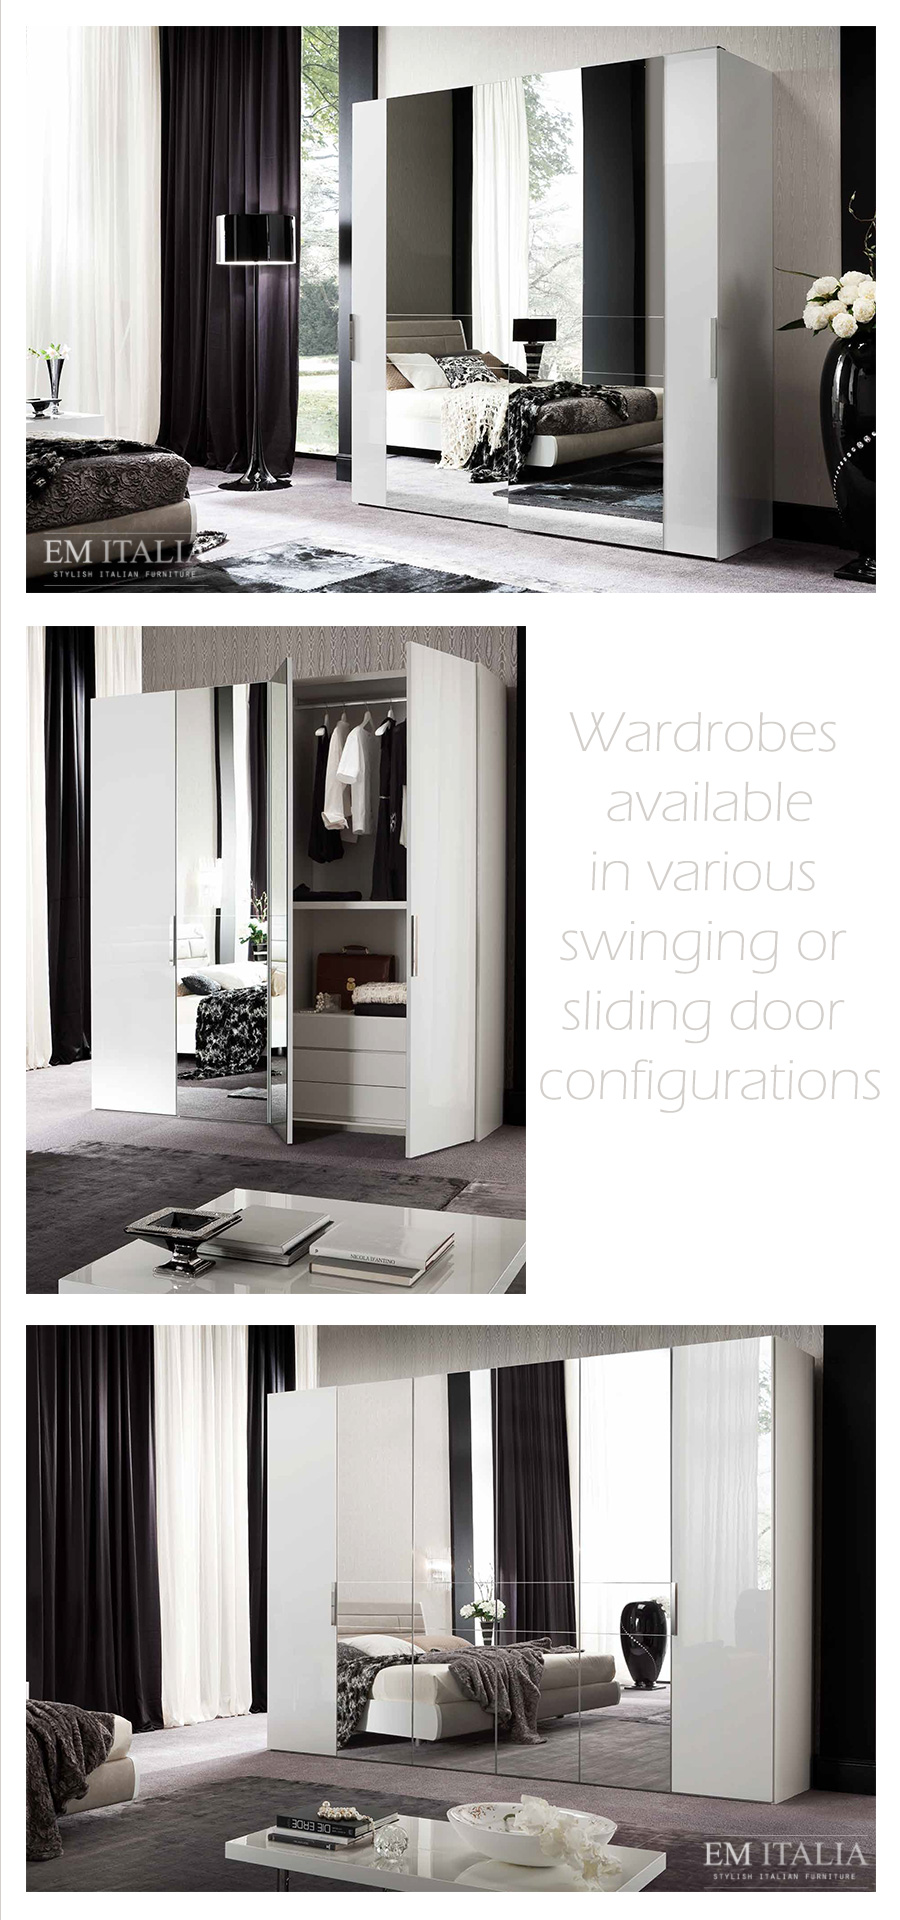 white-bedroom-wardrobes